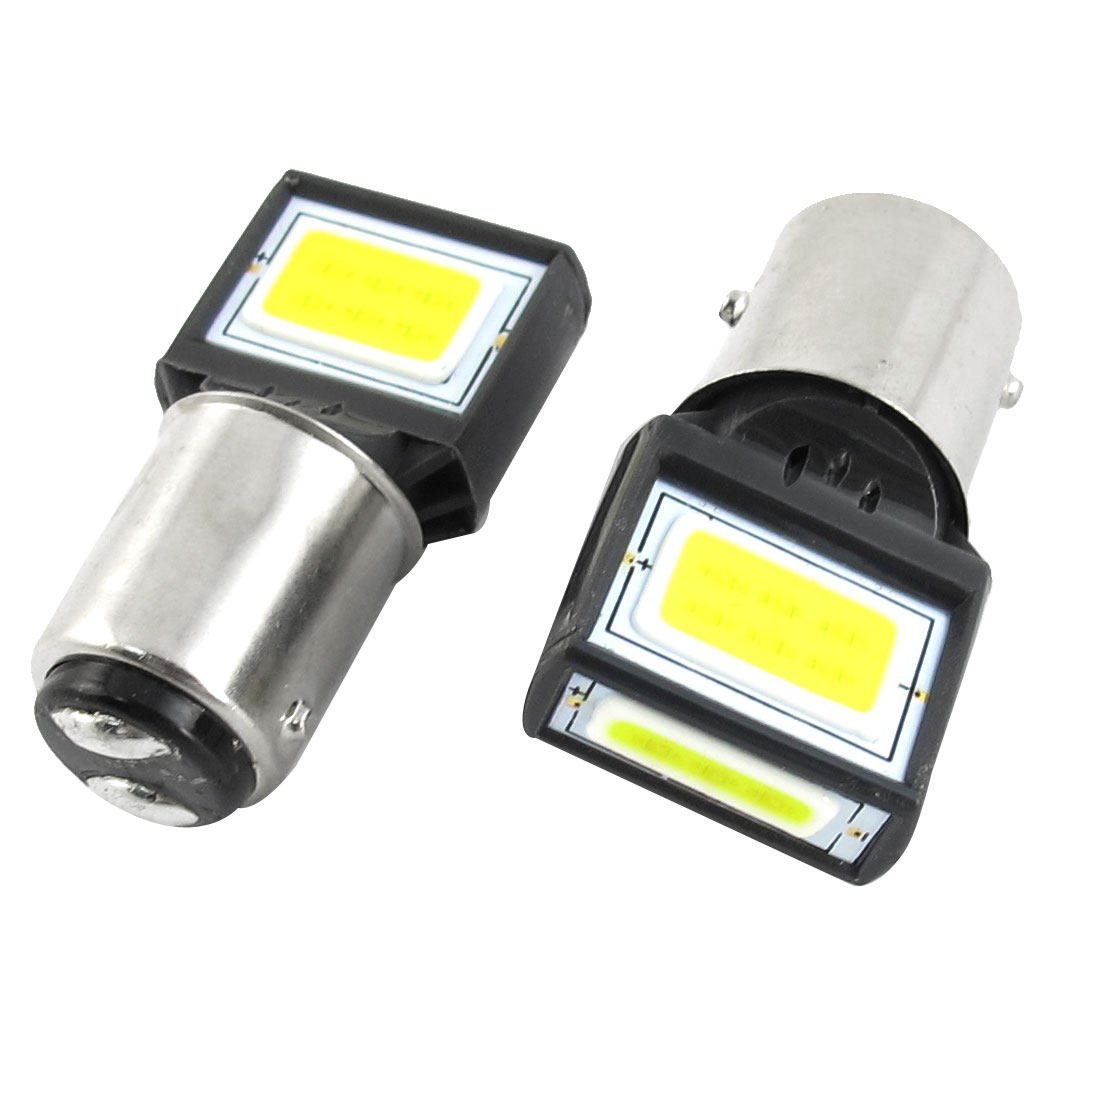 2 Pcs White 15 COB 1157 Brake Tail Light Bulb 8W DC 12V for Auto Car